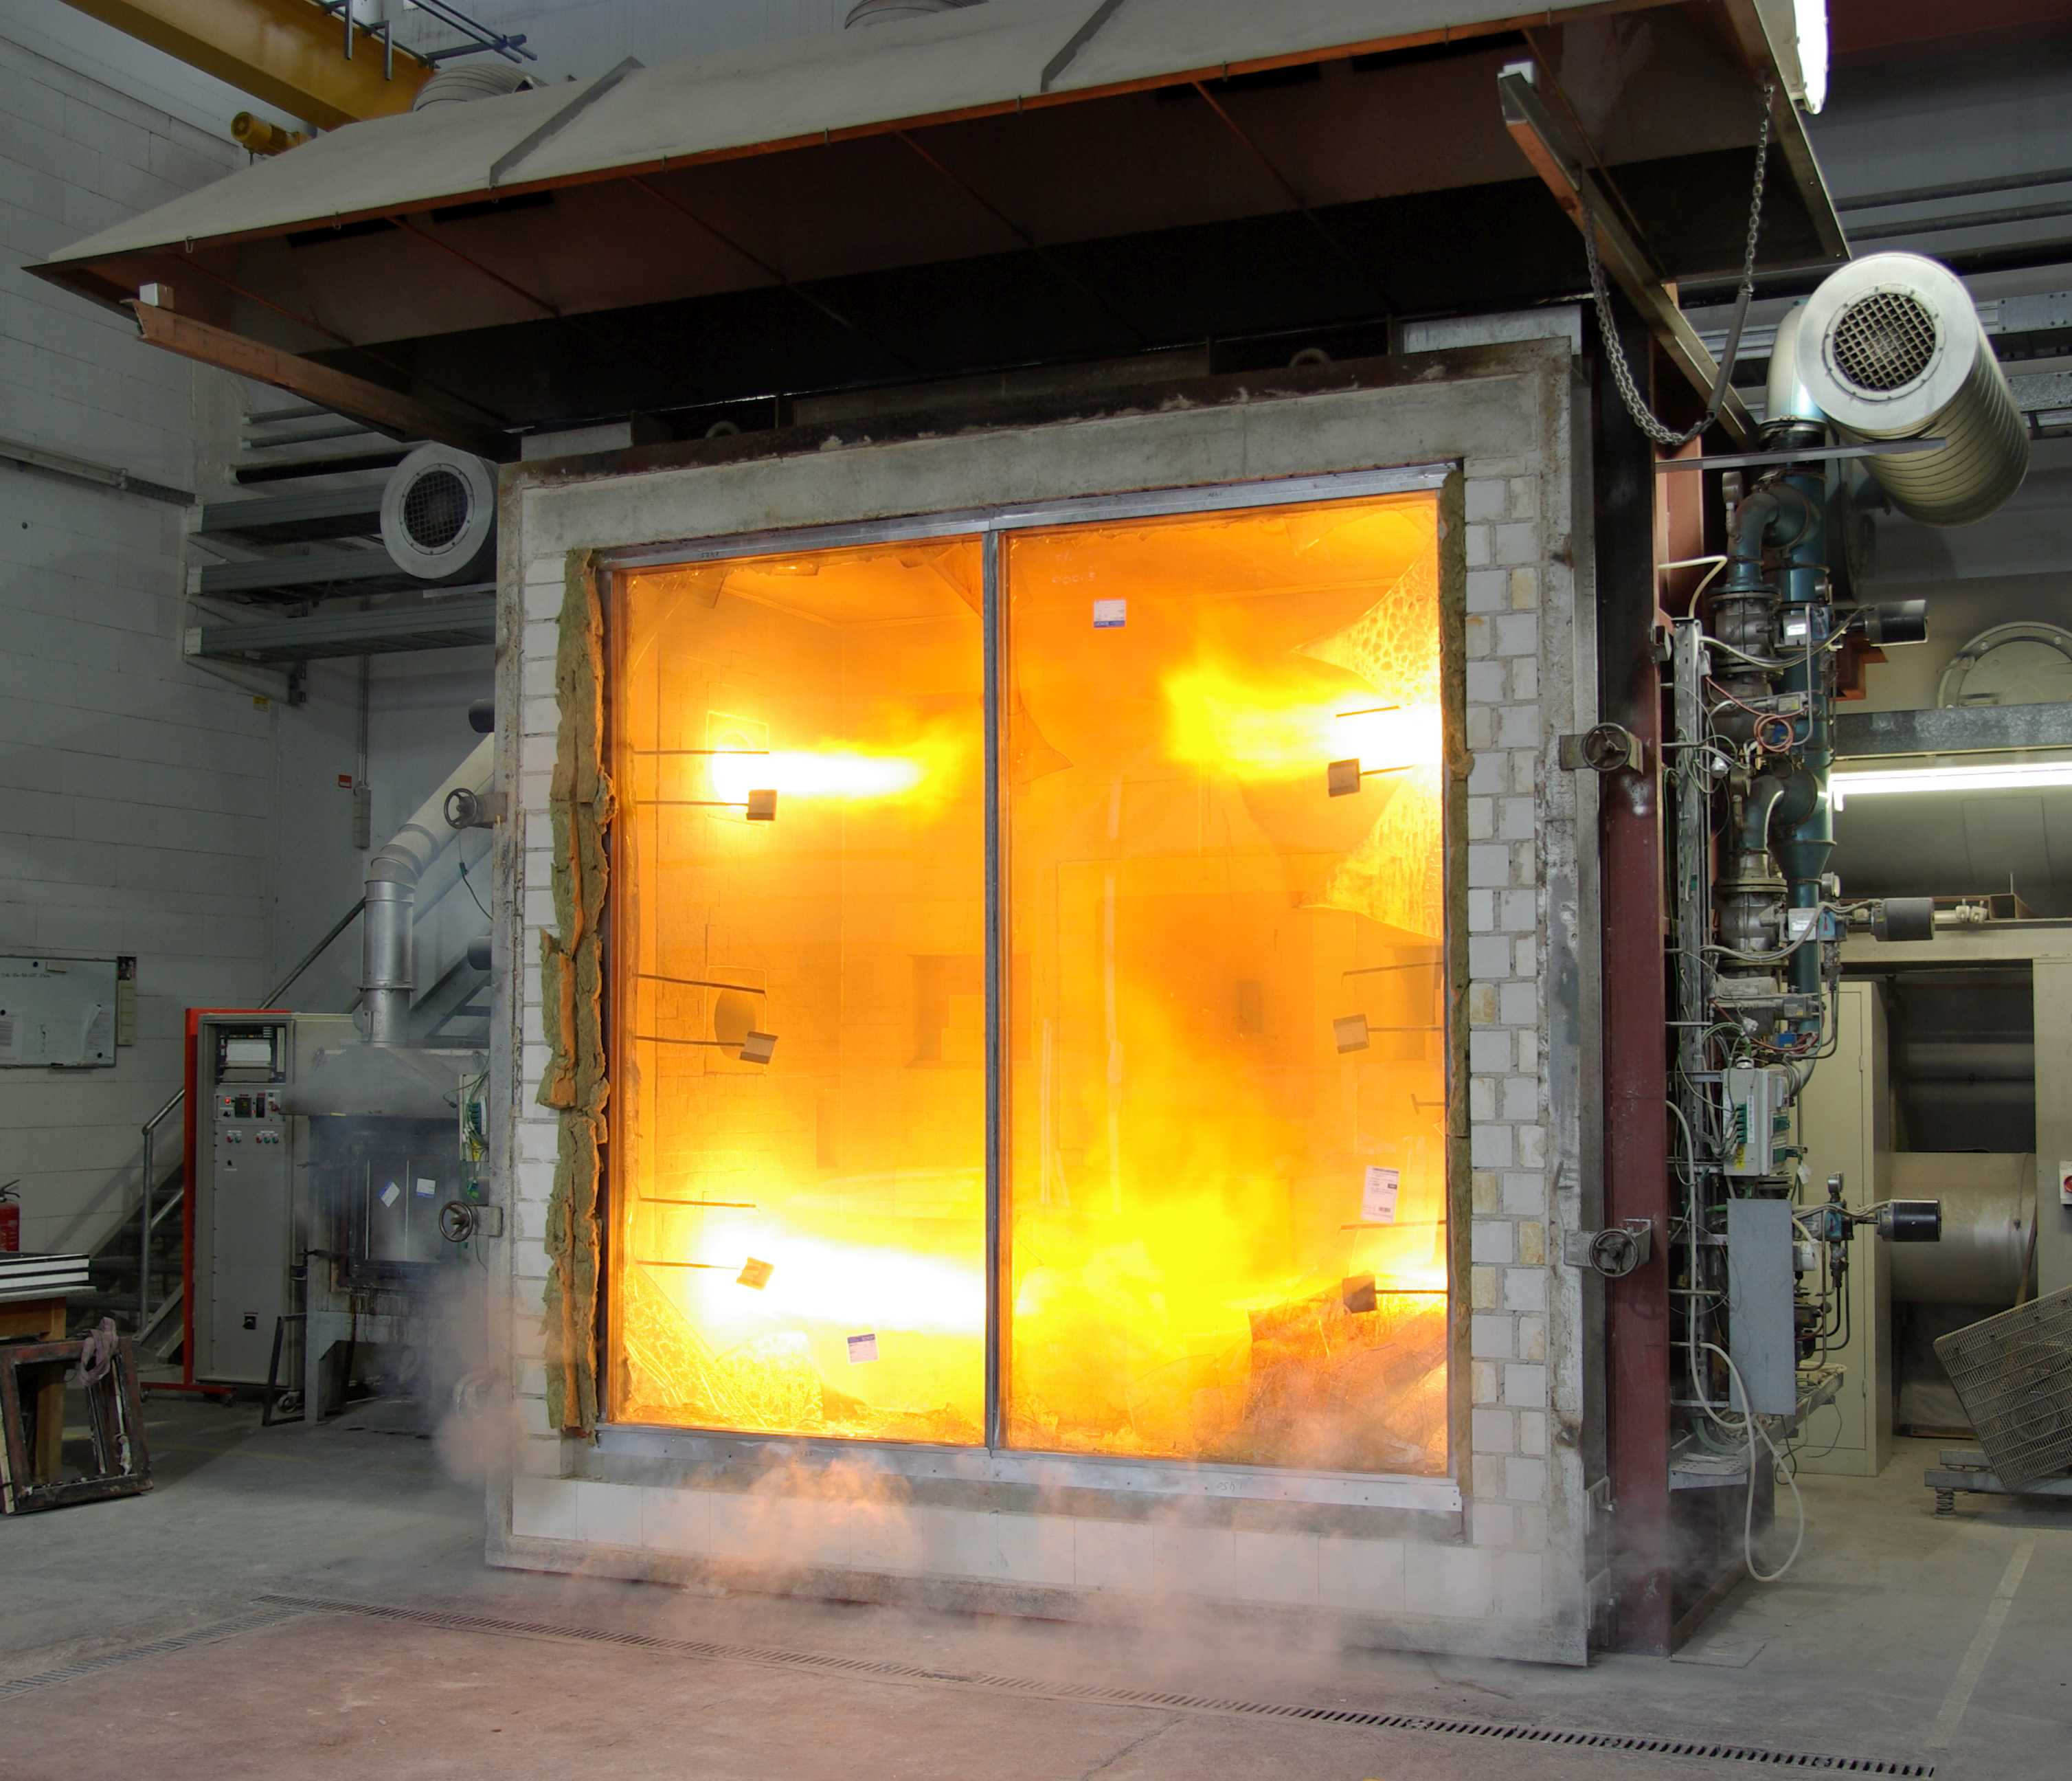 Hot furnace used for conducting fire tests on fire-rated glazing